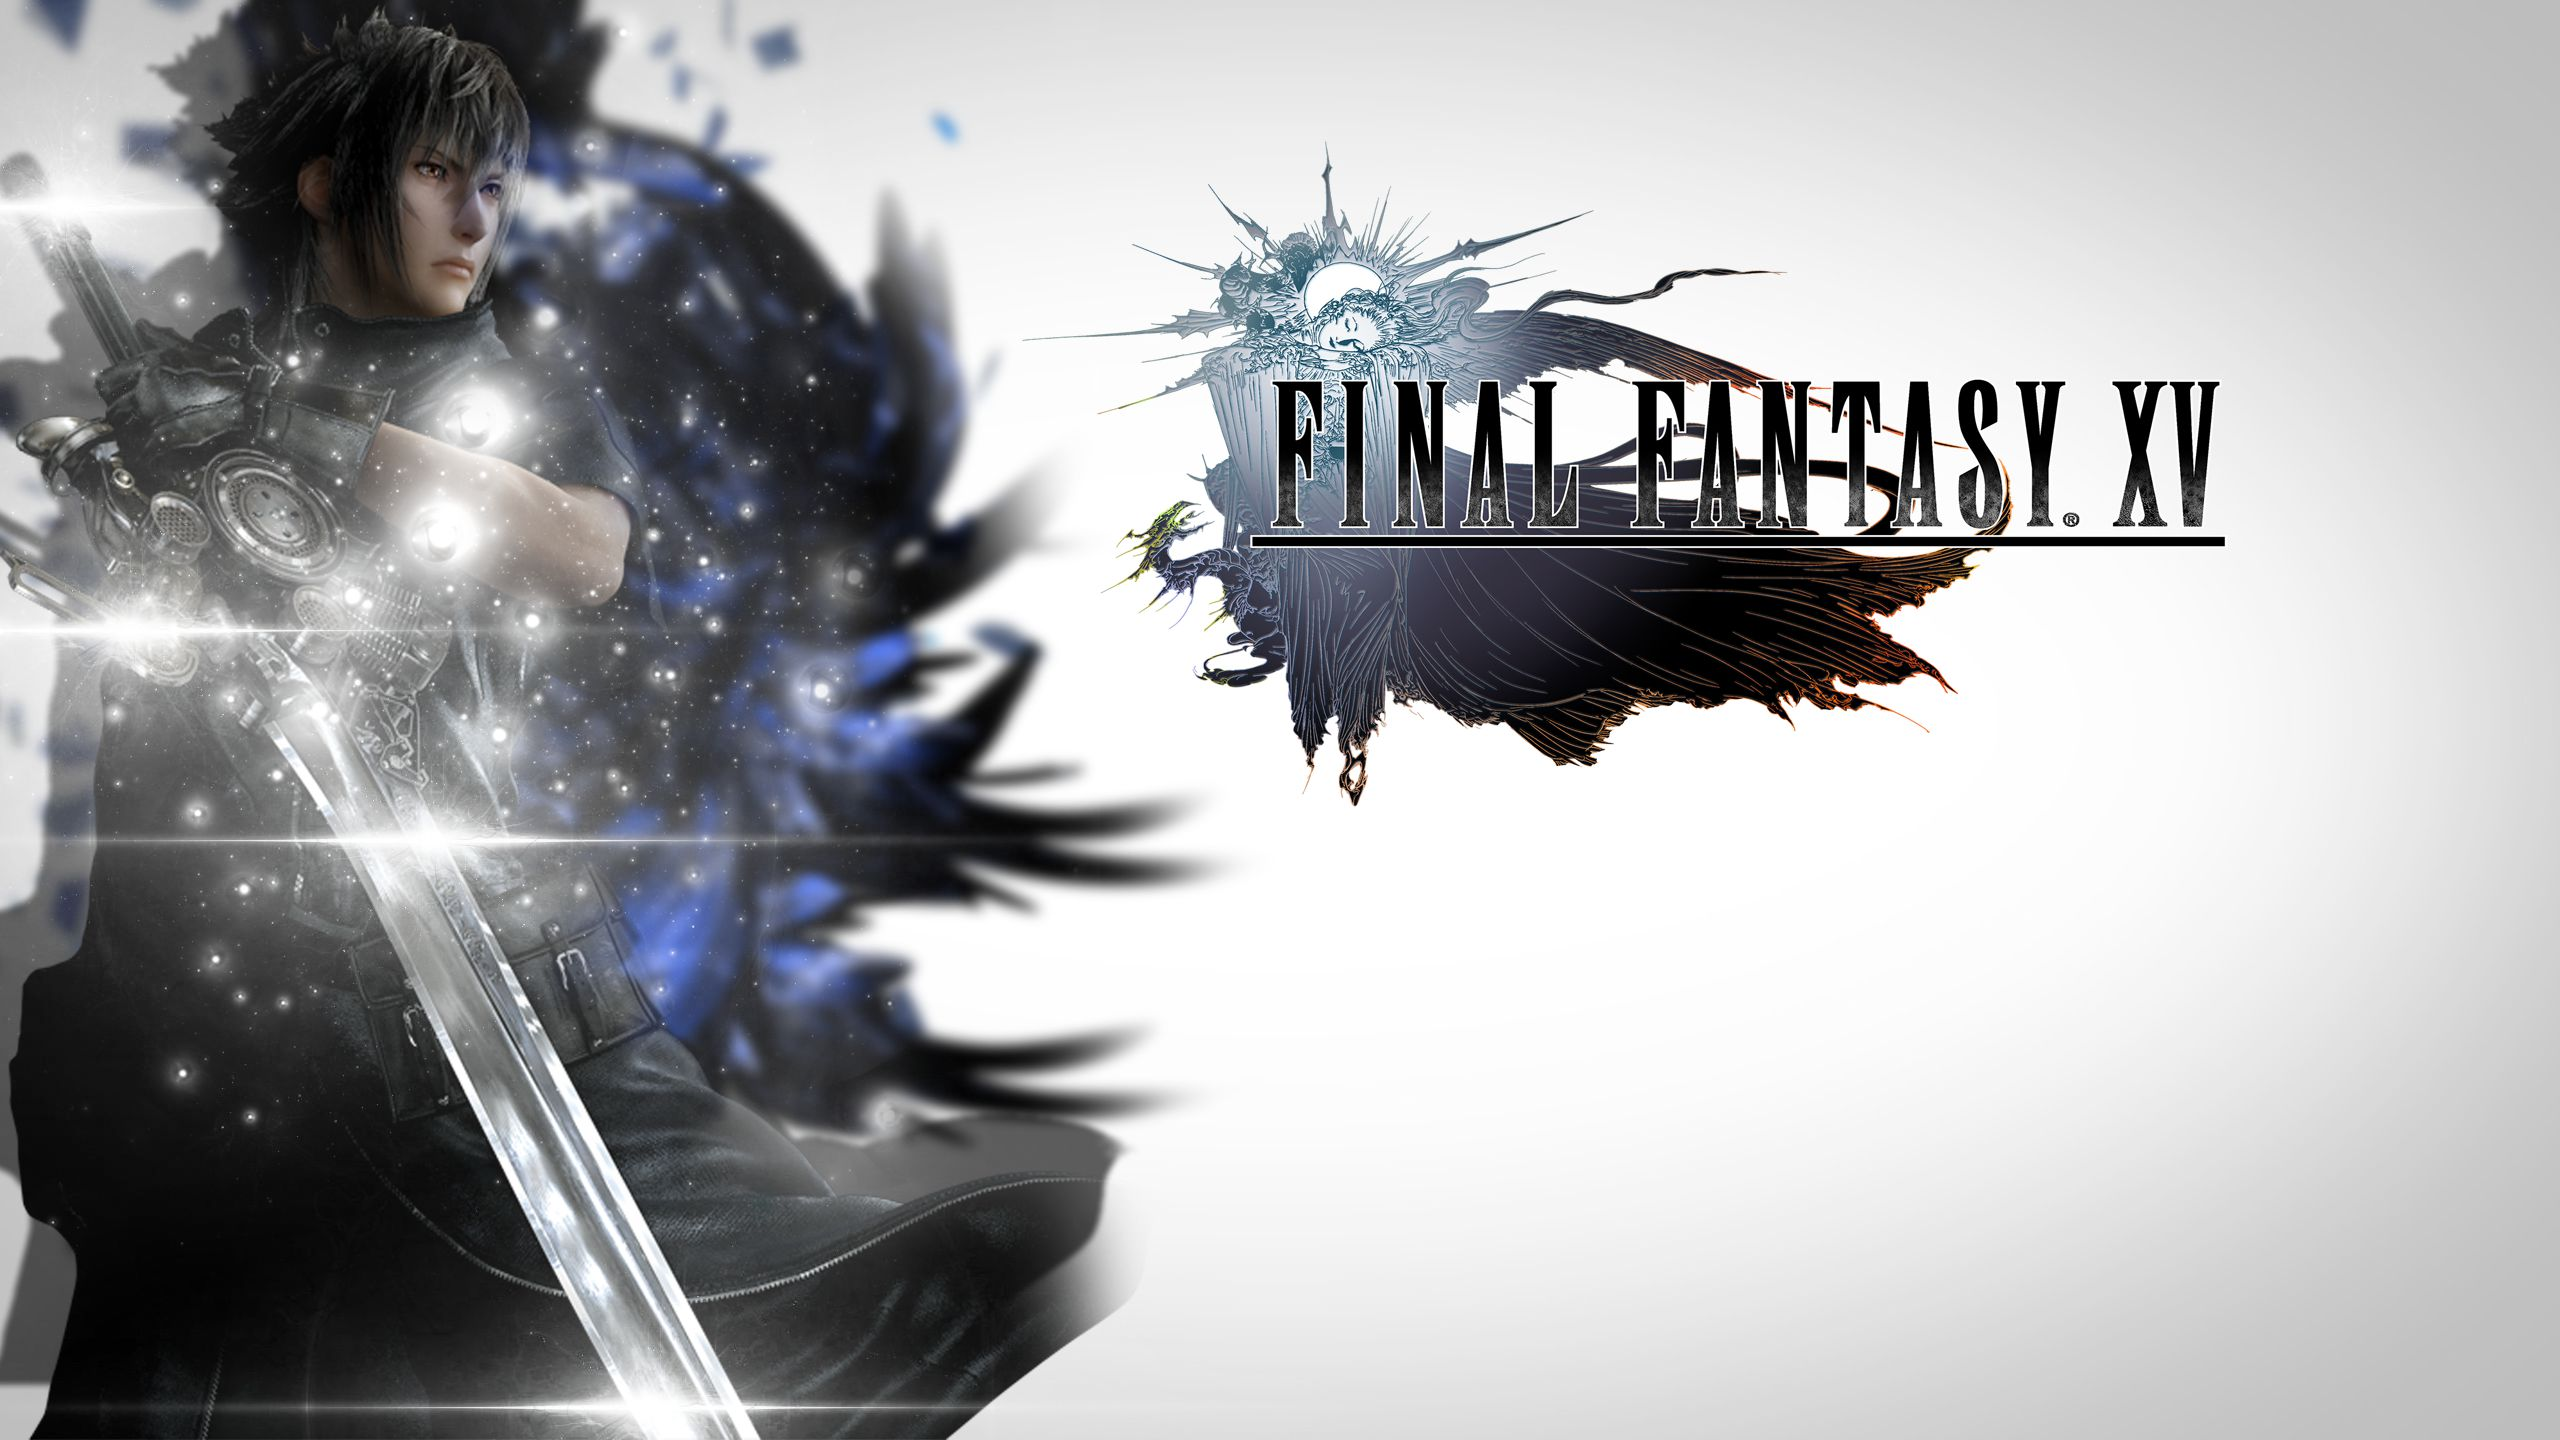 final fantasy xv hd wallpaper | background image | 2560x1440 | id